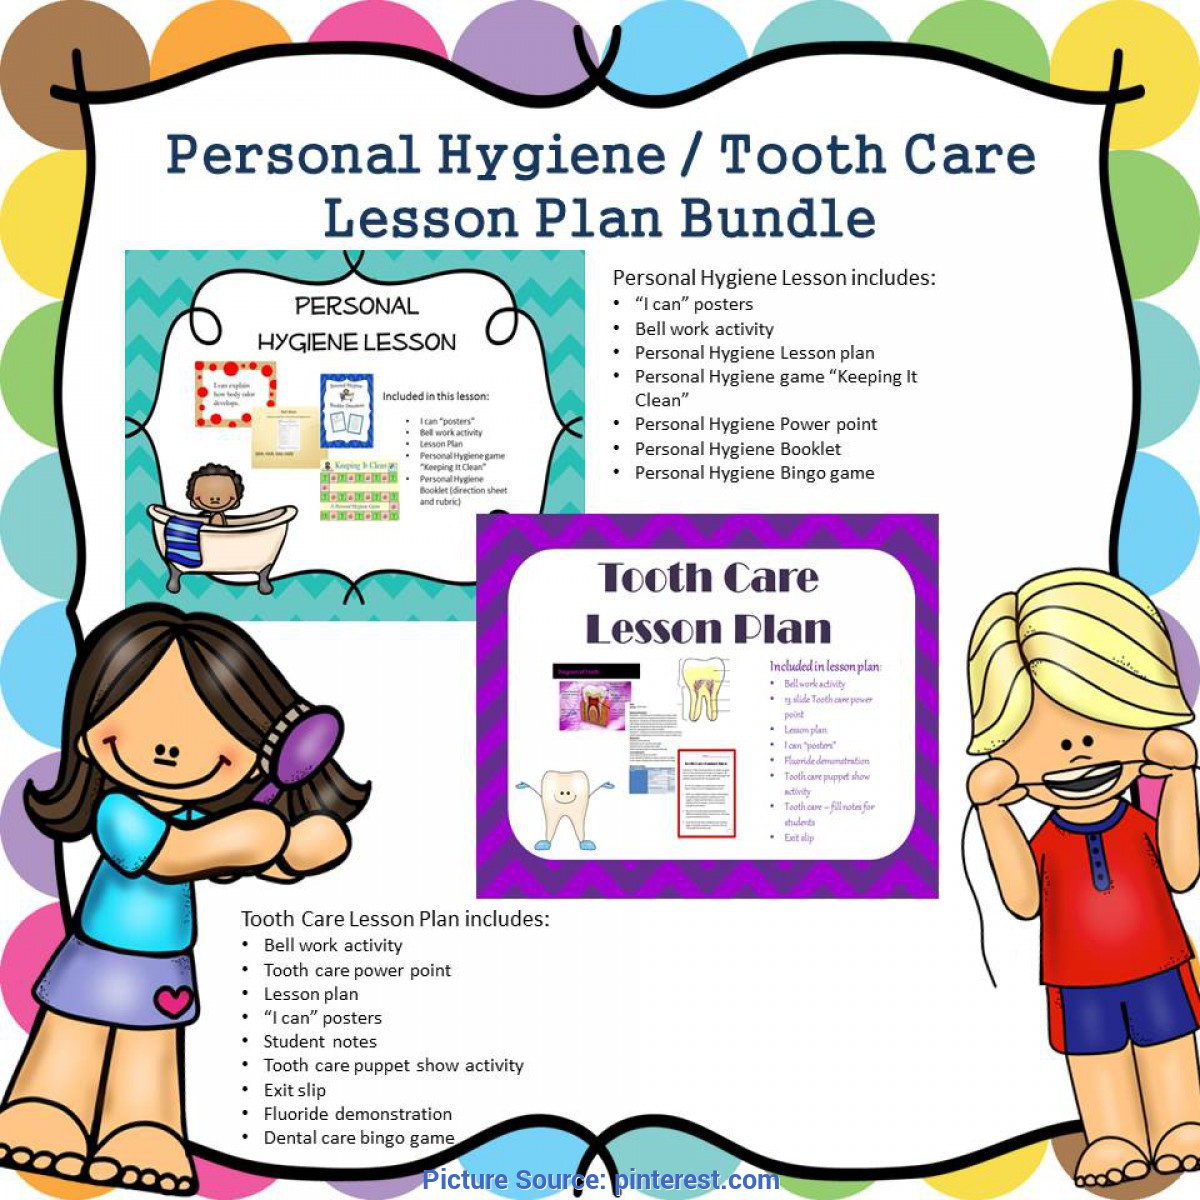 Interesting Sample Semi Detailed Lesson Plan In Health Personal Hygiene Lesson Plan Bundle   Hygiene Lessons, Persona